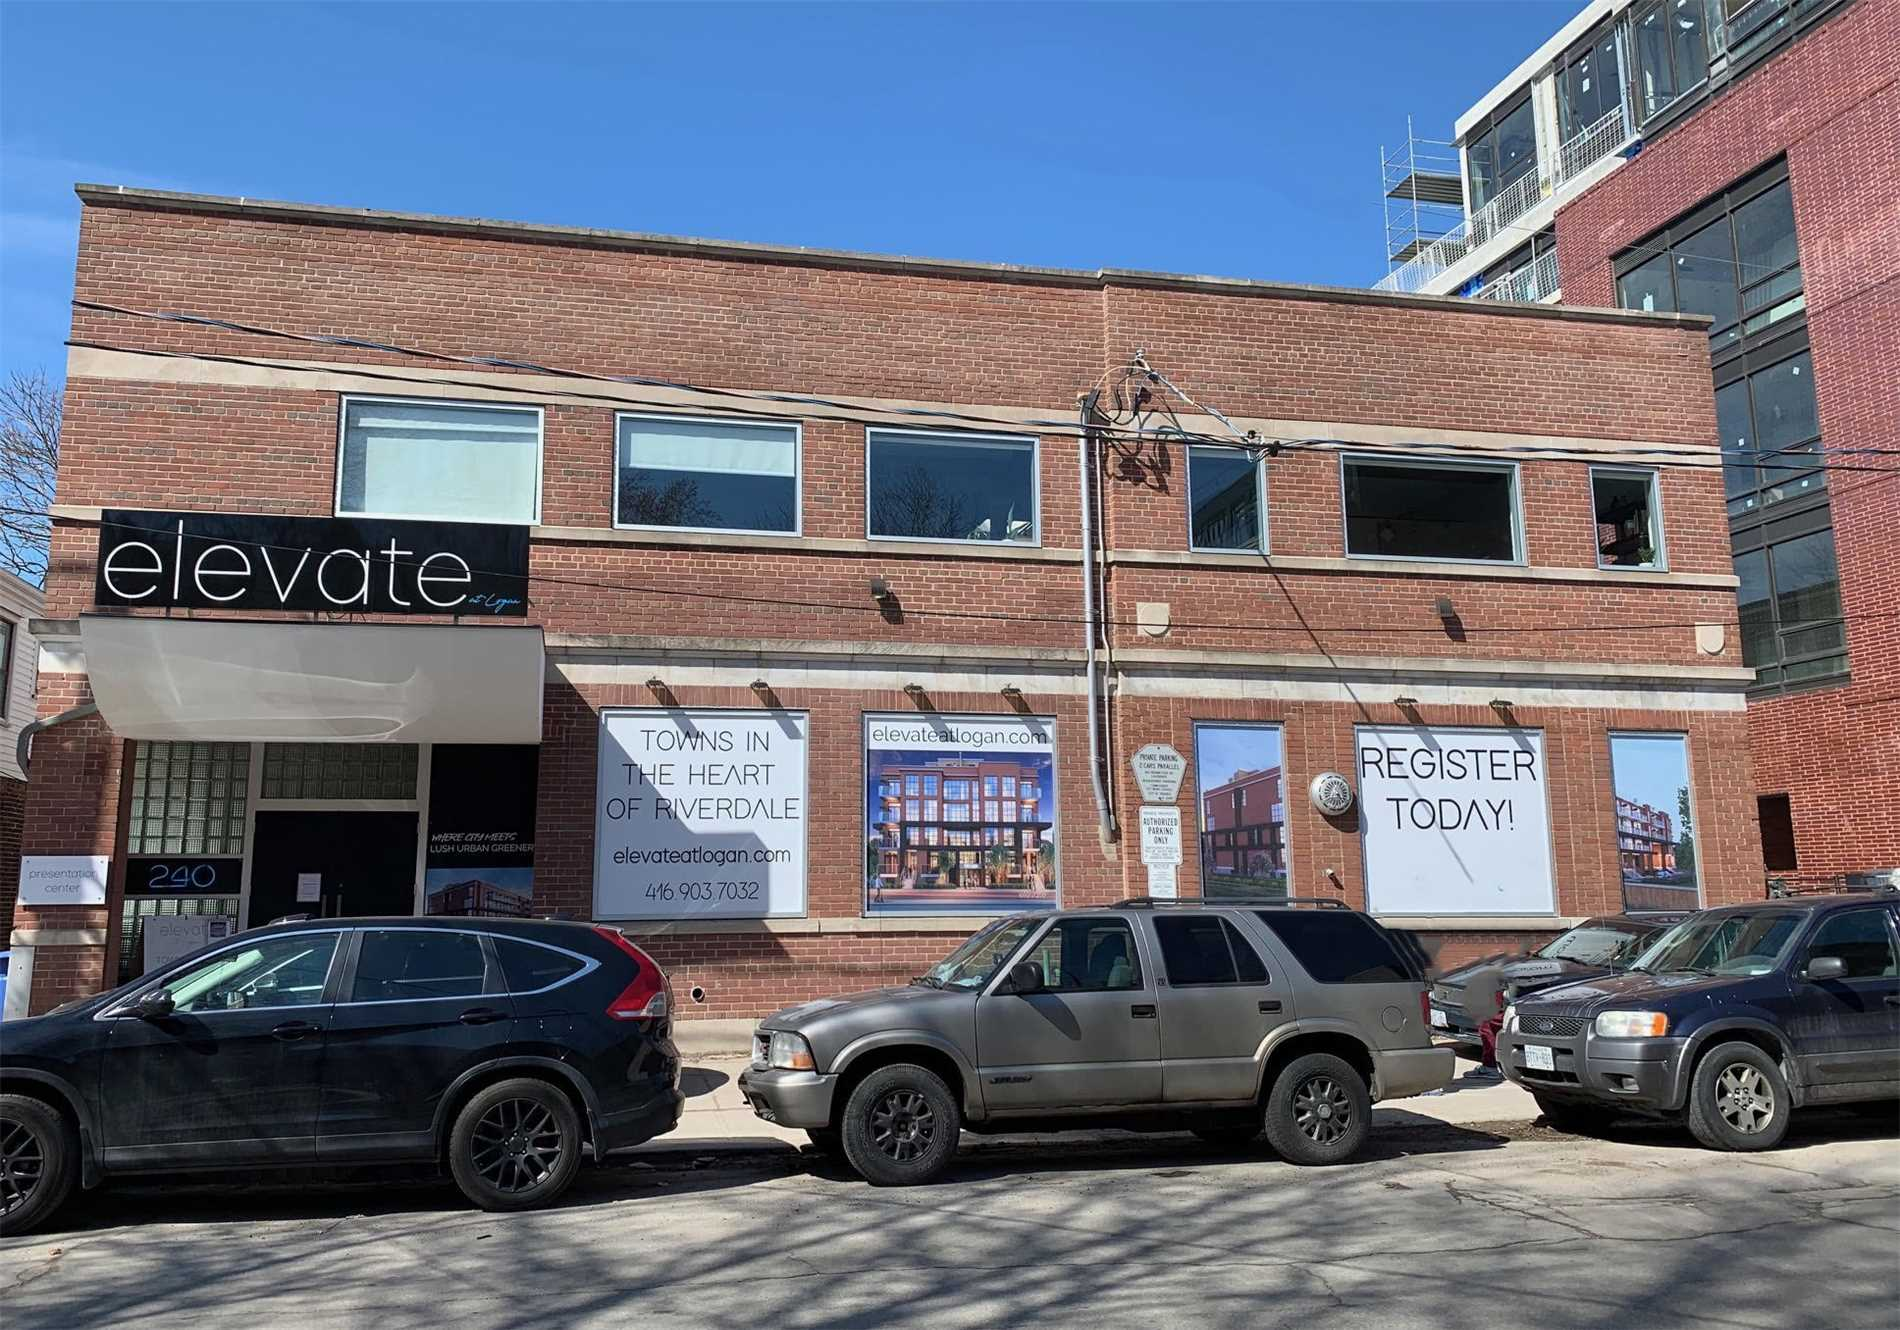 Authentic Post And Beam Office Space In The Studio District In Leslieville At Logan And Queen St E. Streetcar, Trendy Shops, Cafes And Most Services In Walking Distance. Perfect Space For Film Industry, Head Office, Music Studio, Sales Office, Ad Agency, Interior Design, Fashion Use, Showroom, Art Gallery, Shared Office Space. Total Space Available: Approximately 8400 Sf - Can Be Divided.